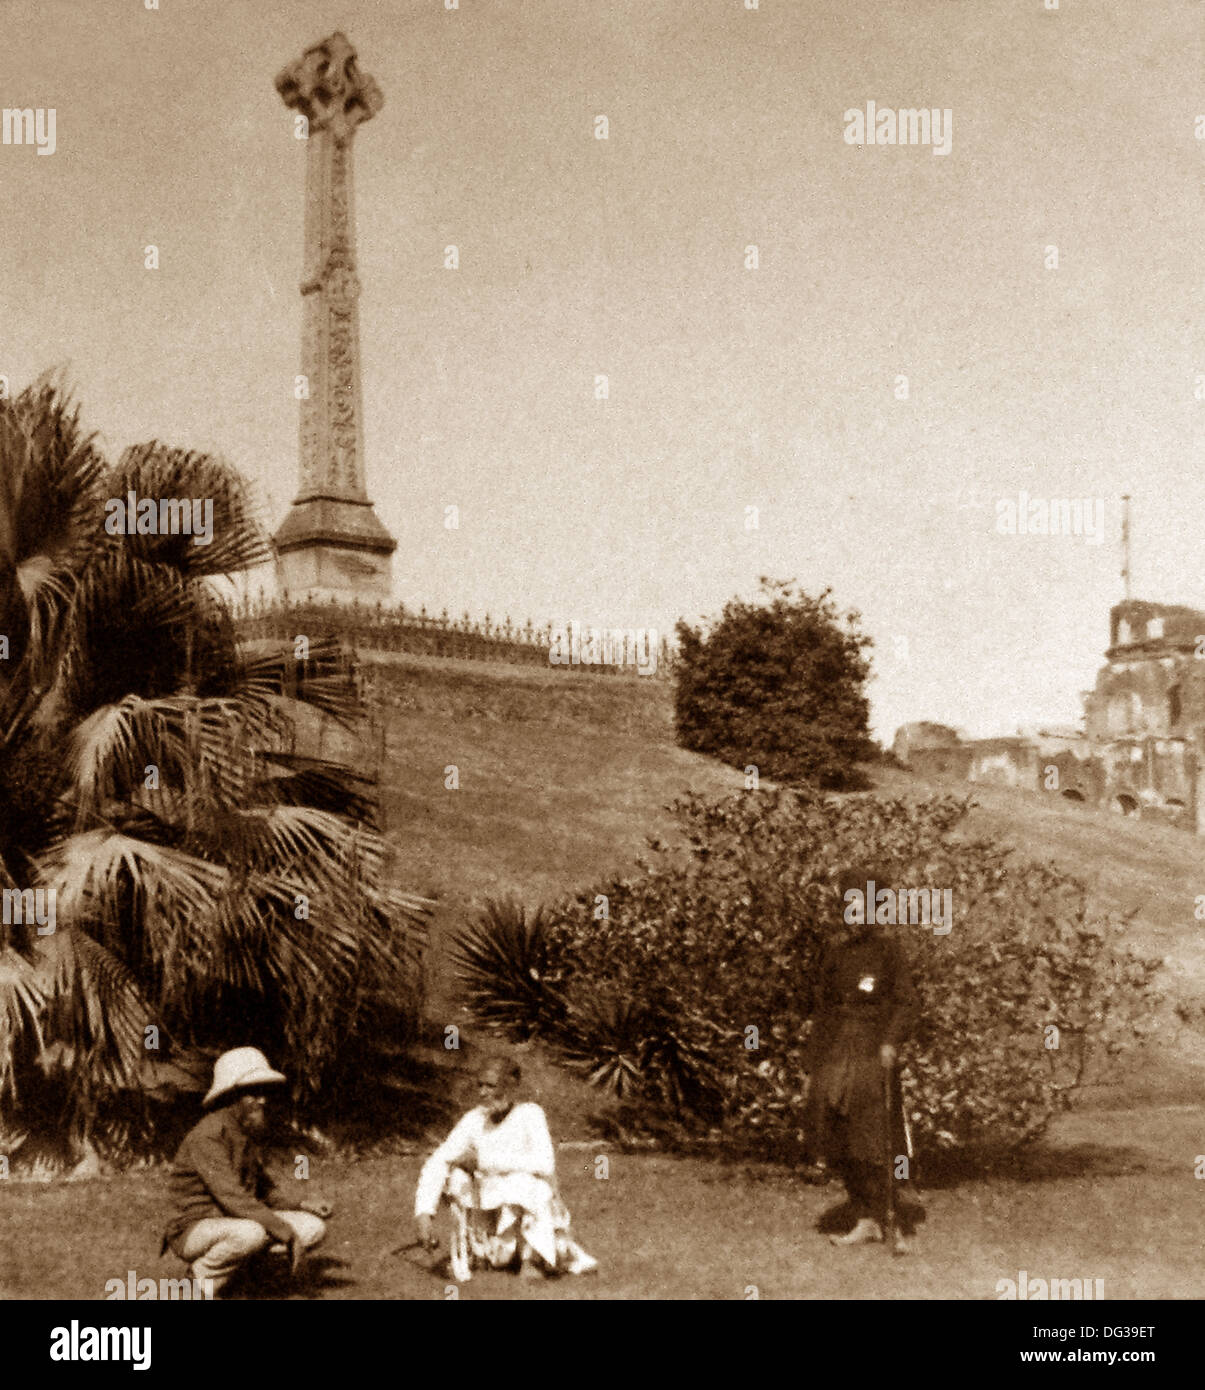 India - Lucknow Memorial to Sir Henry Lawrence early 1900s - Stock Image